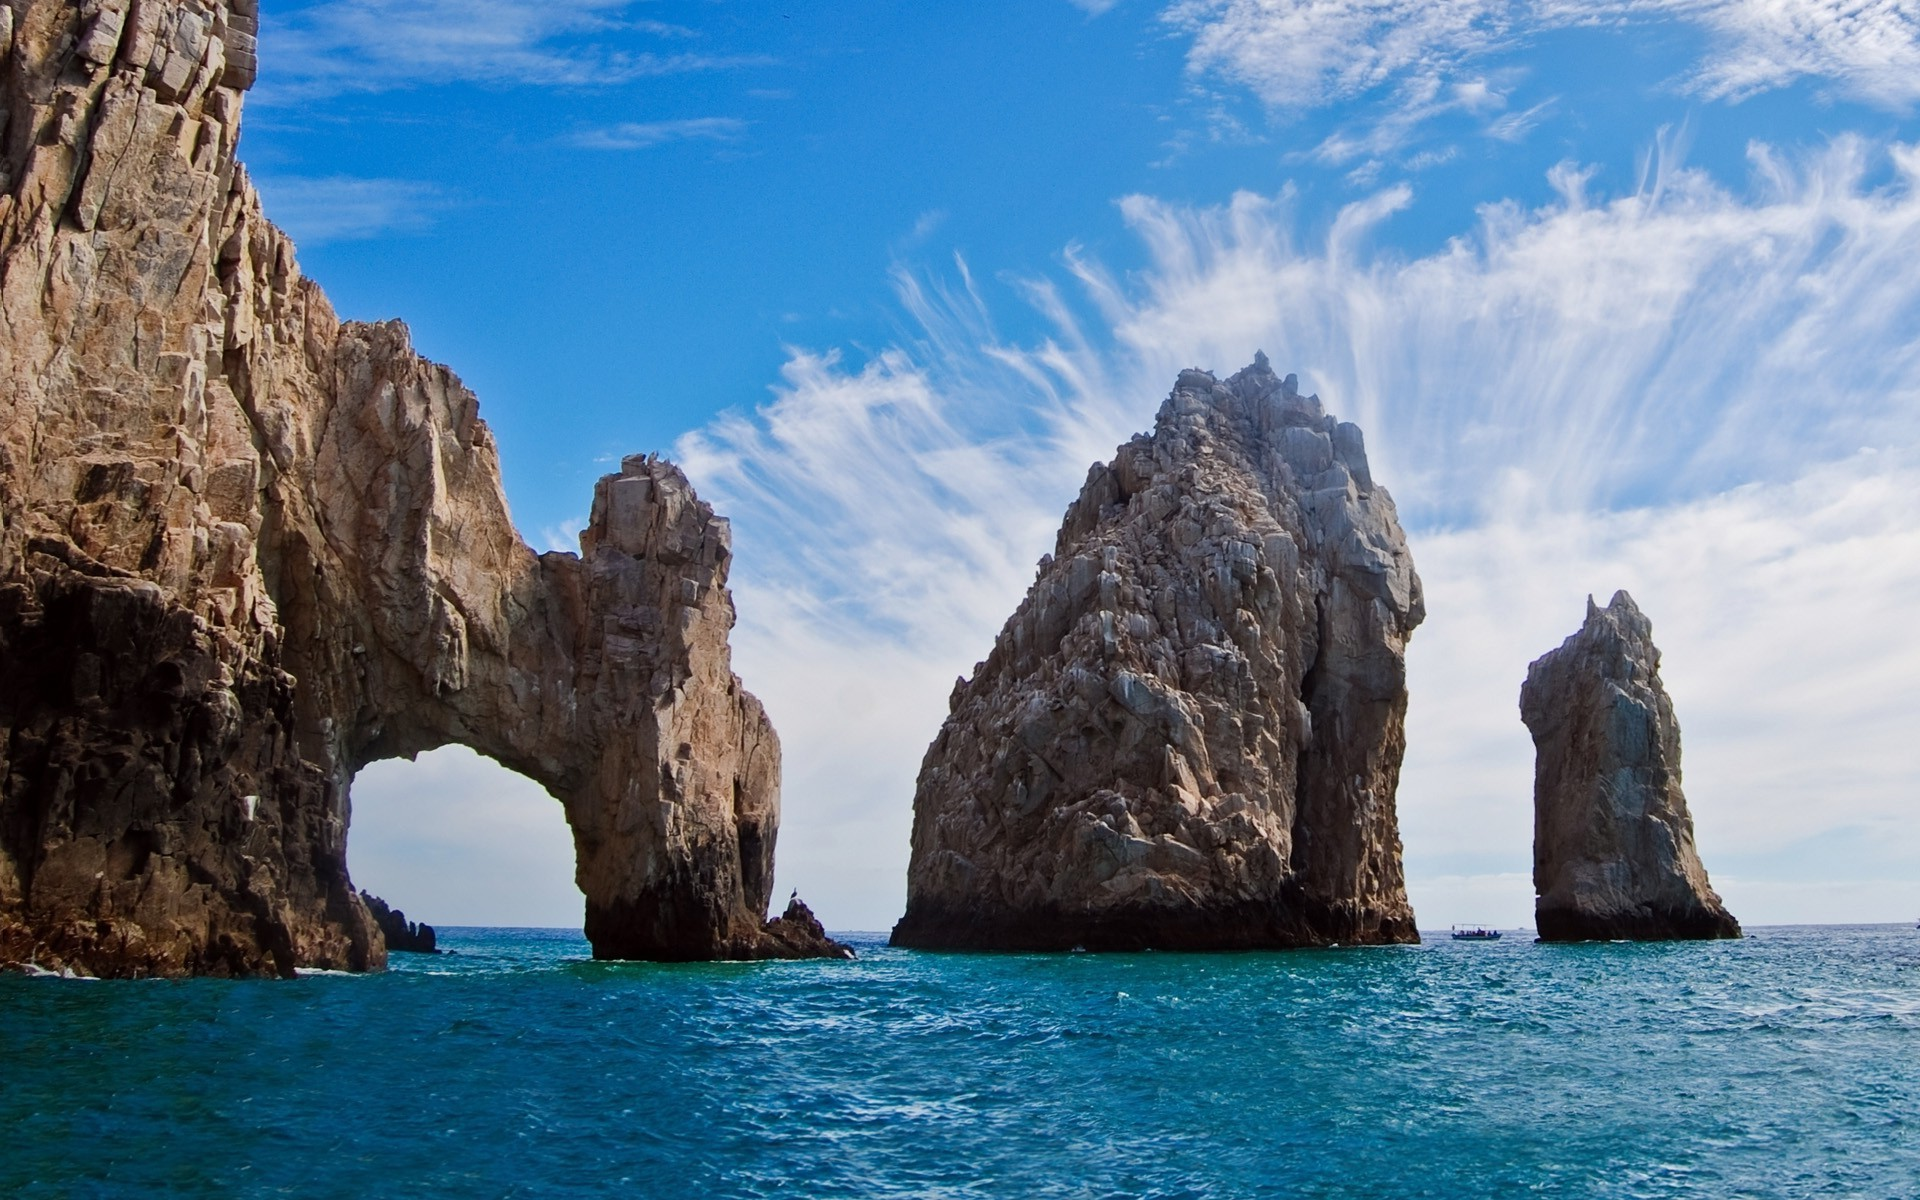 sea, Rock, Cliff, Island, Beach, Mexico, Clouds, Nature, Water, Landscape  Wallpapers HD / Desktop and Mobile Backgrounds